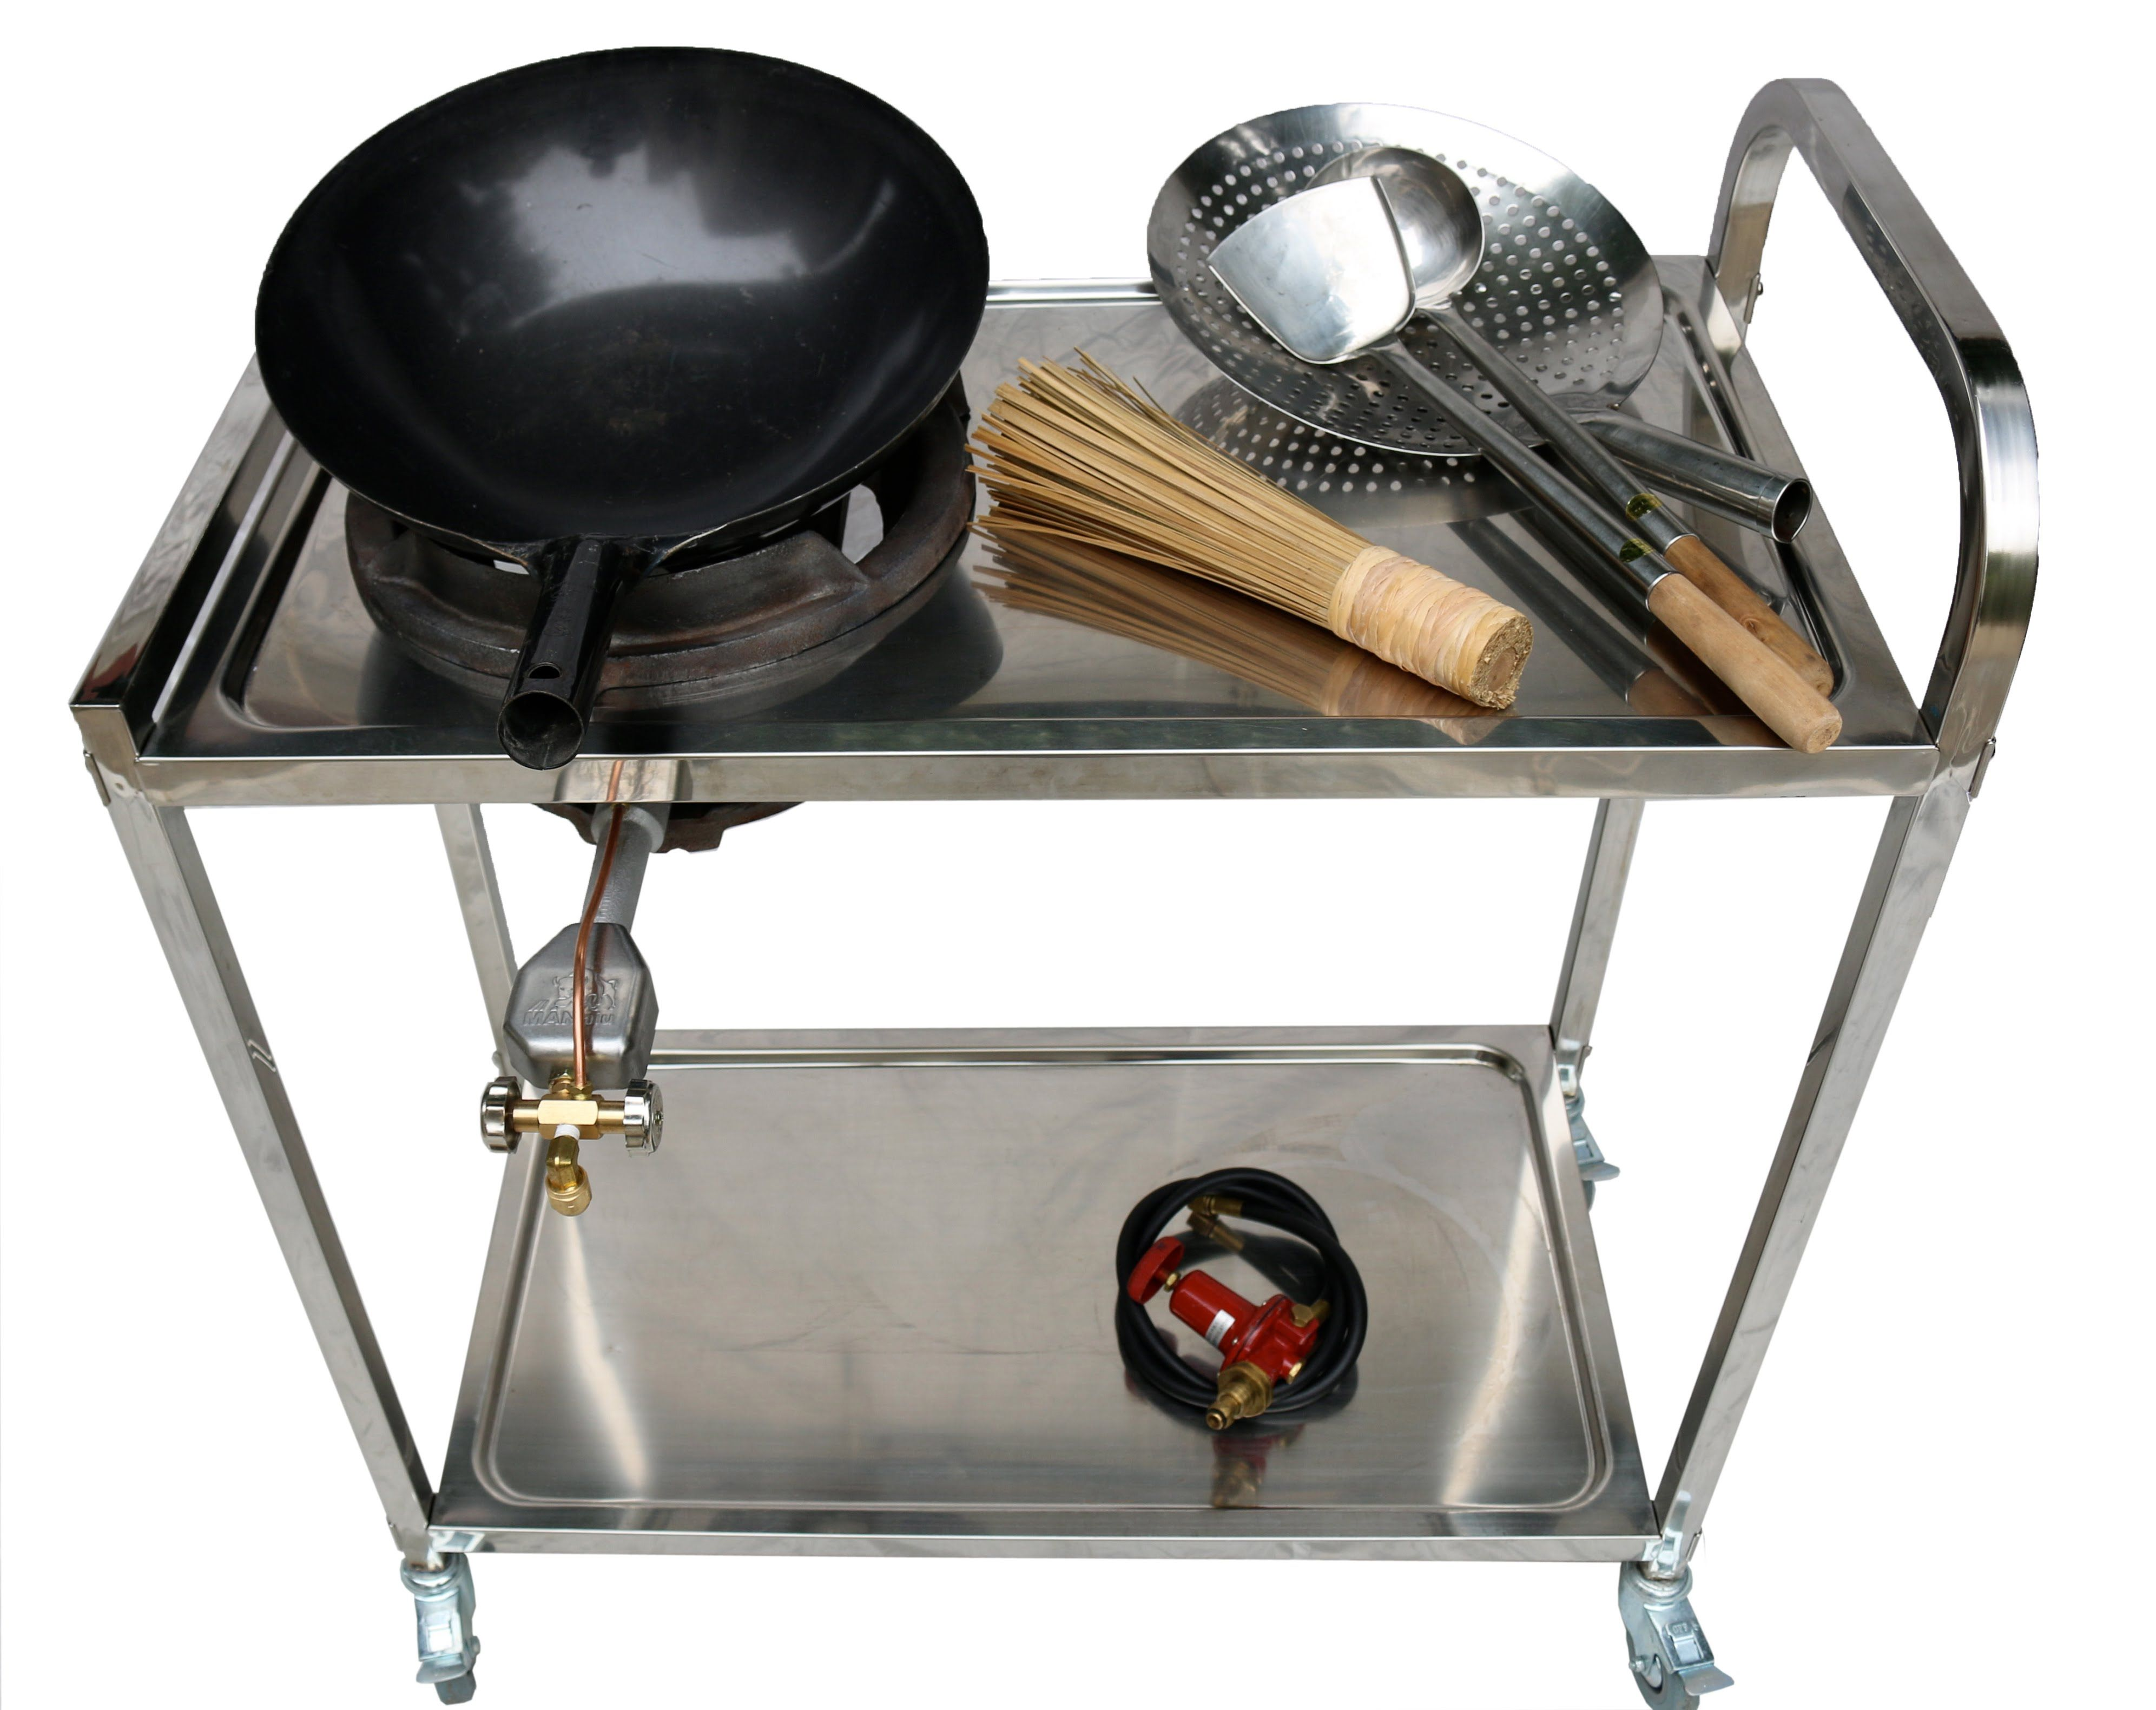 The X72 Burner System Vol 40 Outdoor Cooking Station Wok Wok Cooking